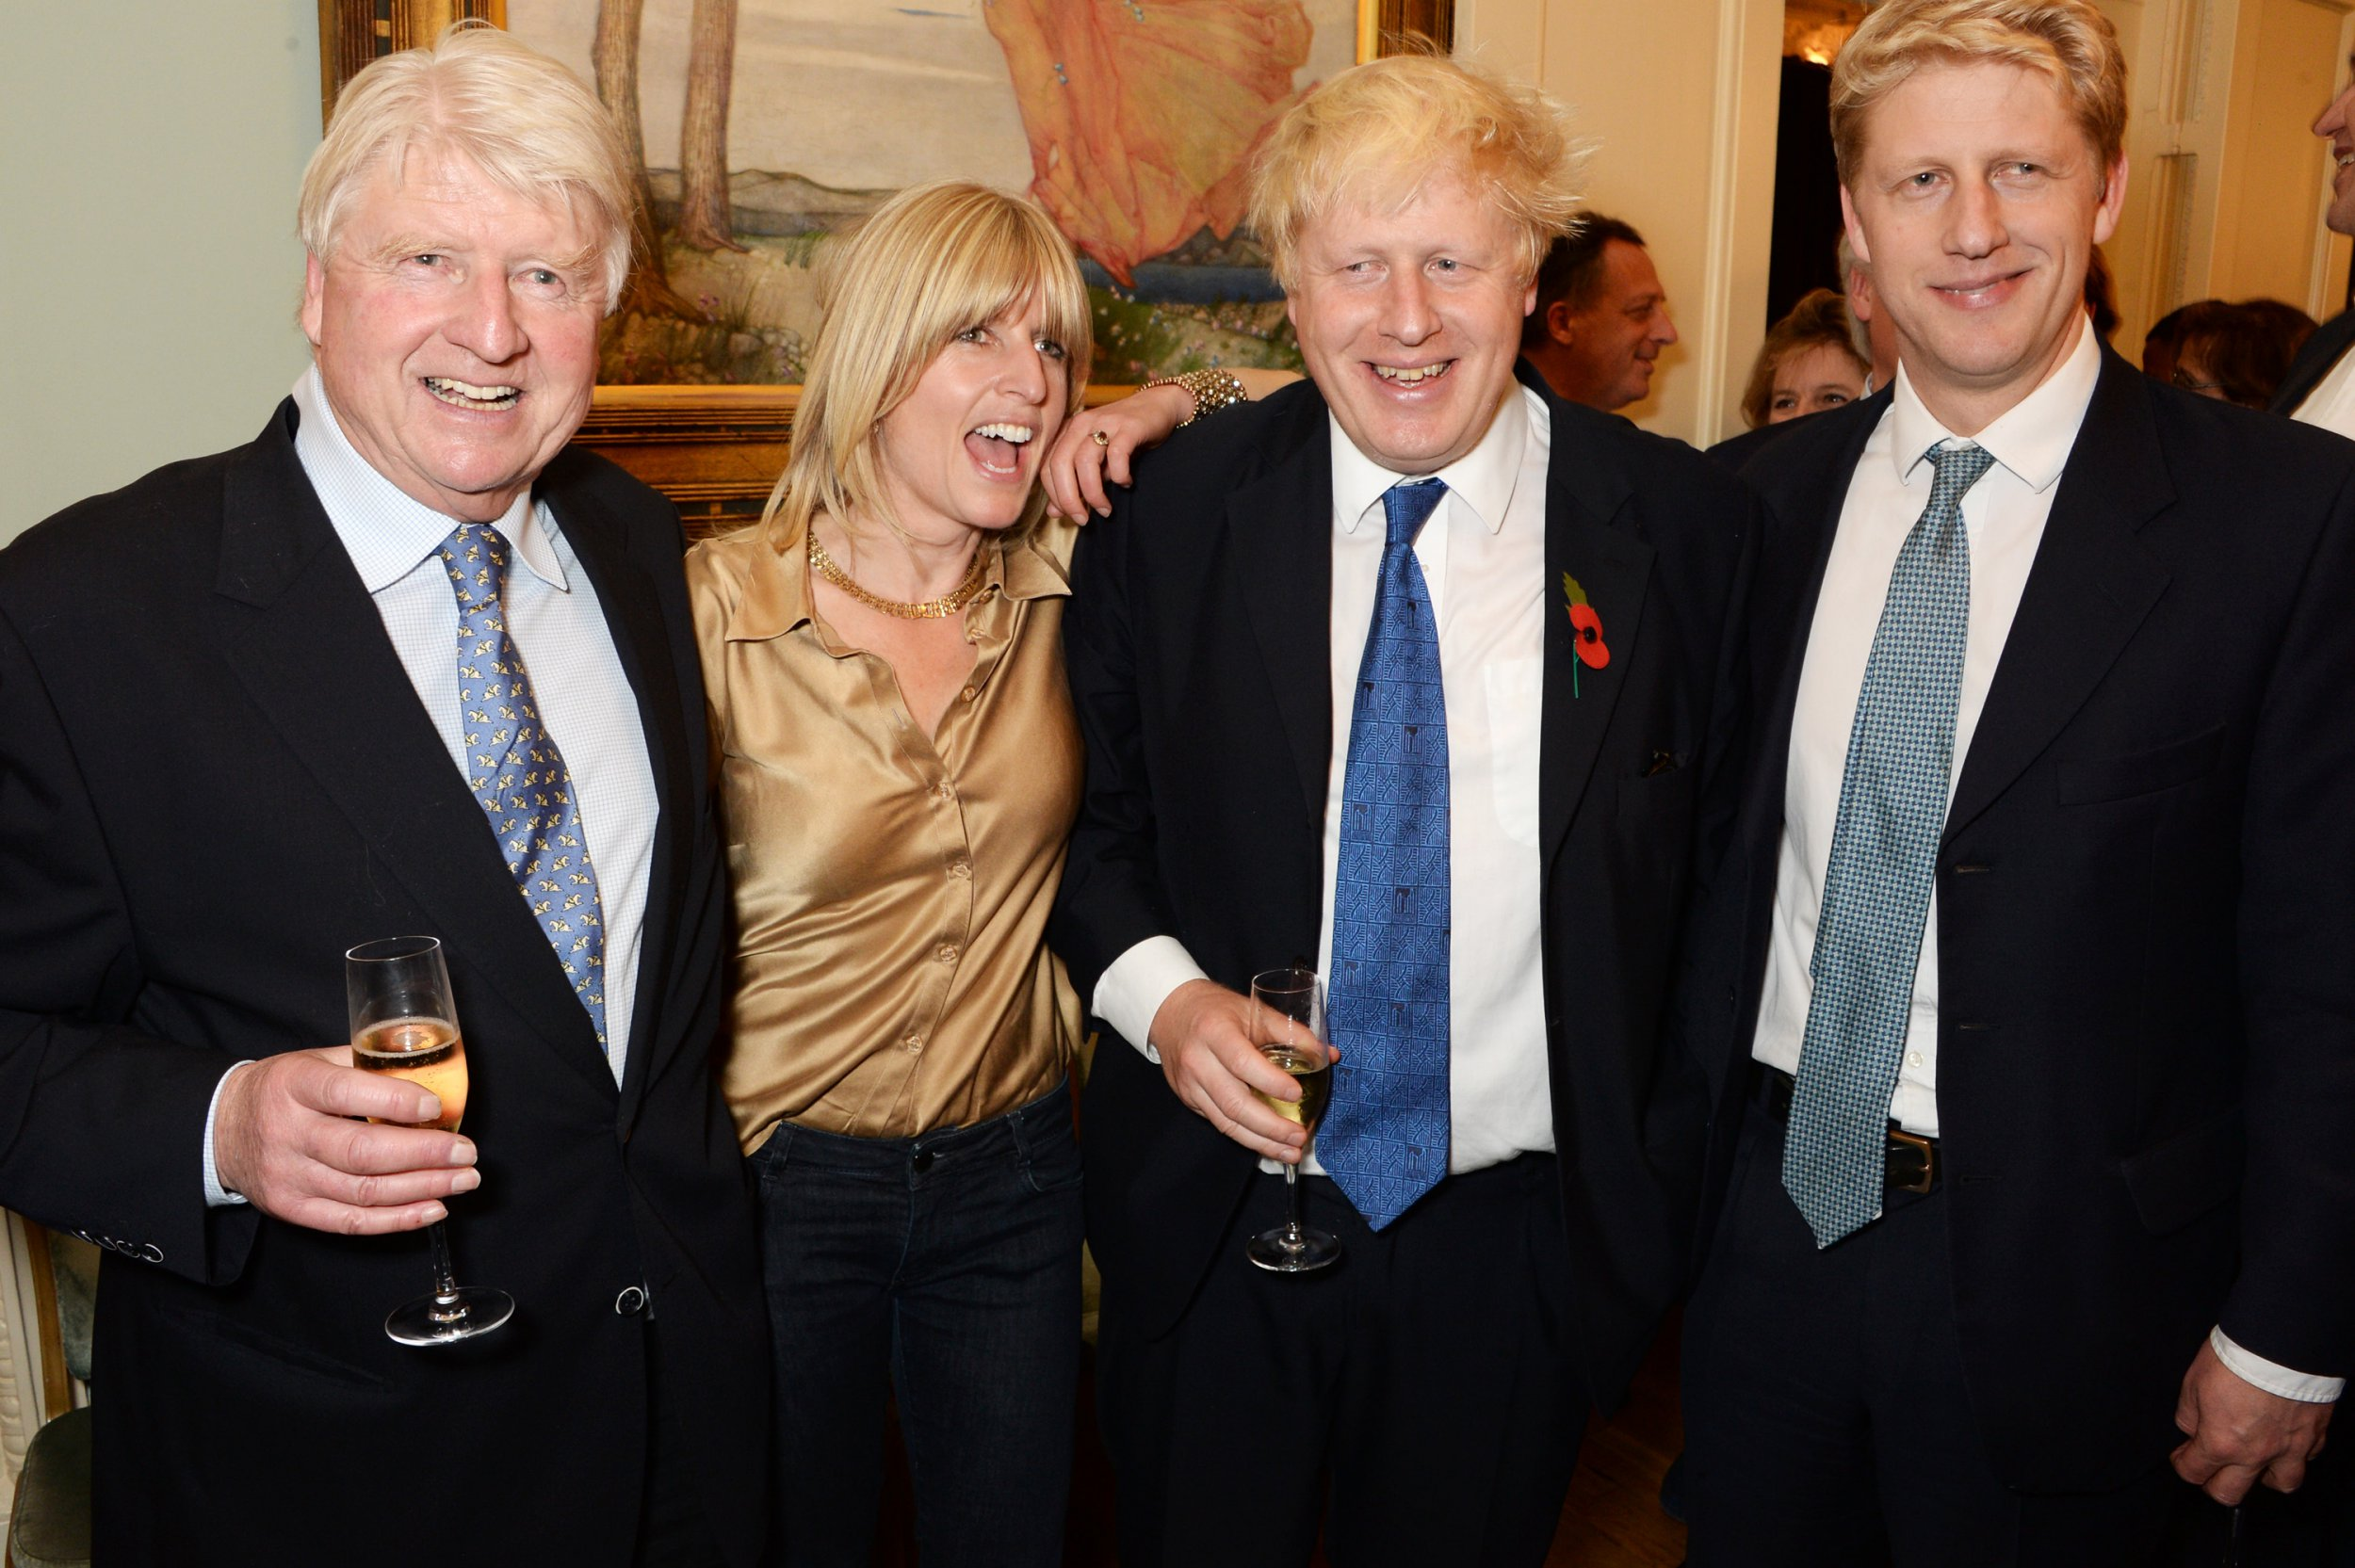 """LONDON, ENGLAND - OCTOBER 22: (L to R) Stanley Johnson, Rachel Johnson, Mayor of London Boris Johnson and Jo Johnson attend the launch of Boris Johnson's new book """"The Churchill Factor: How One Man Made History"""" at Dartmouth House on October 22, 2014 in London, England. (Photo by David M. Benett/Getty Images)"""